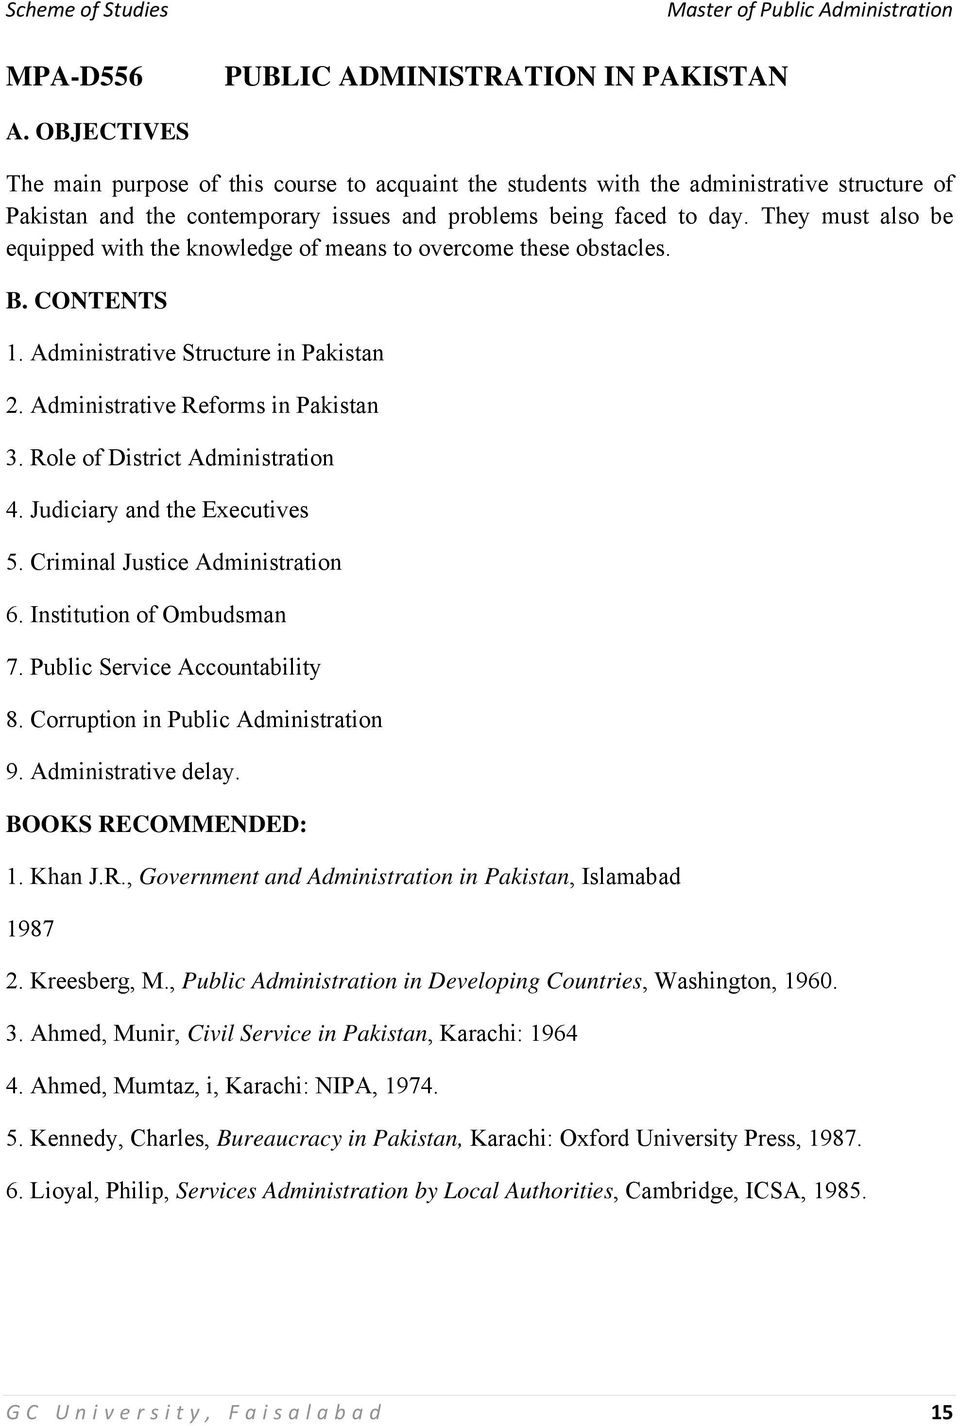 They must also be equipped with the knowledge of means to overcome these obstacles. B. CONTENTS 1. Administrative Structure in Pakistan 2. Administrative Reforms in Pakistan 3.